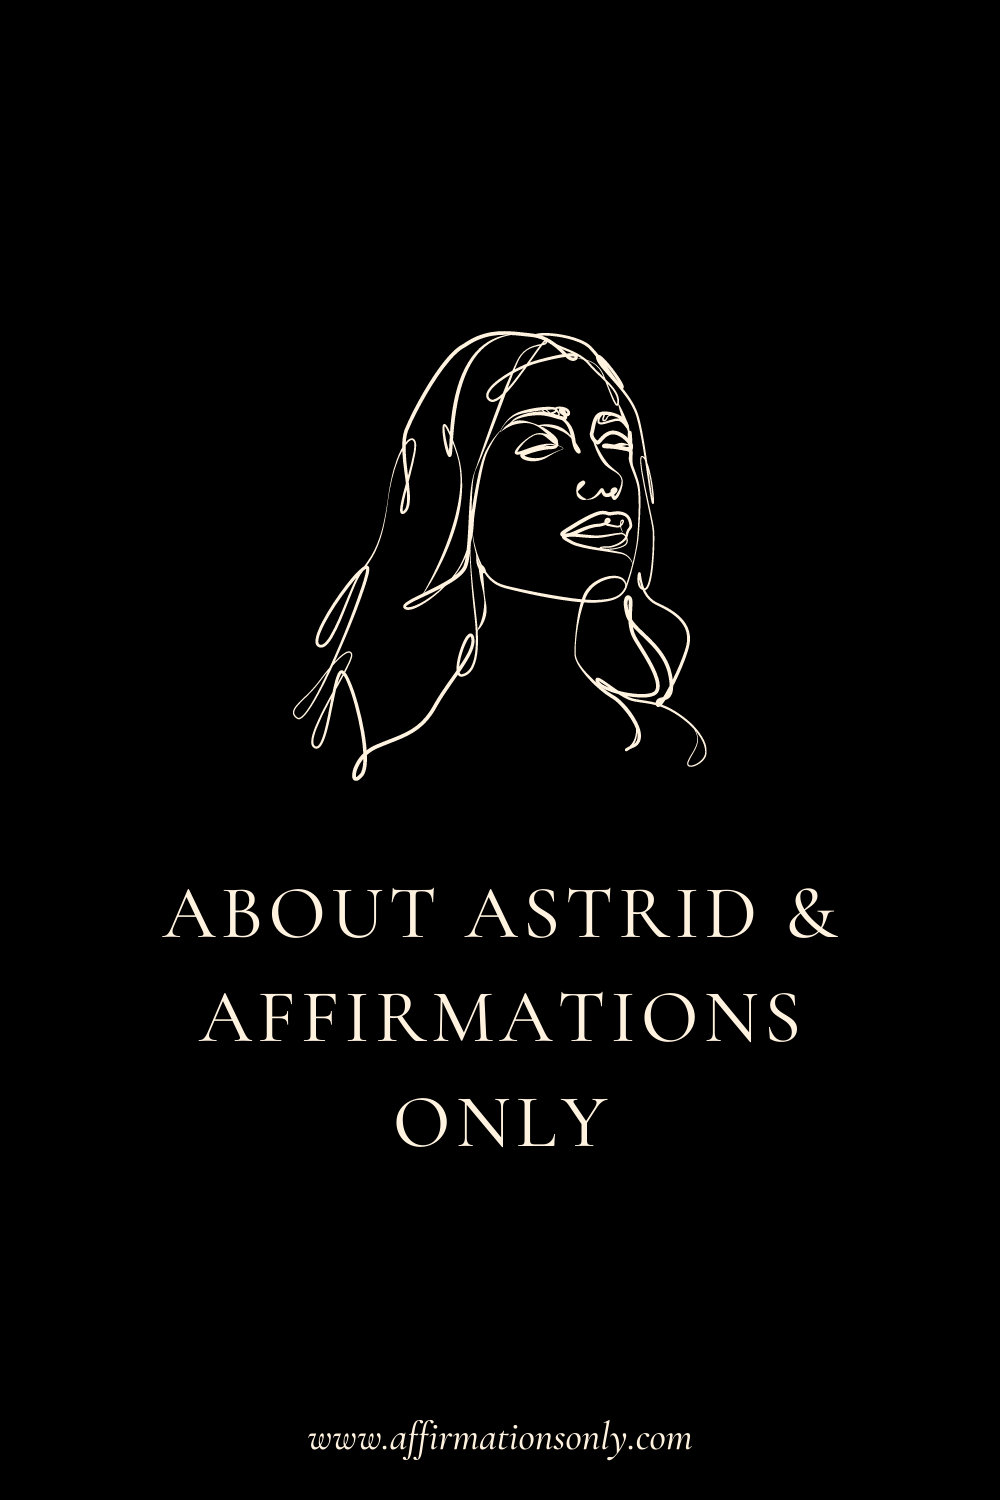 About Affiramtions Only - Positve Affirmations Blog by Astrid K